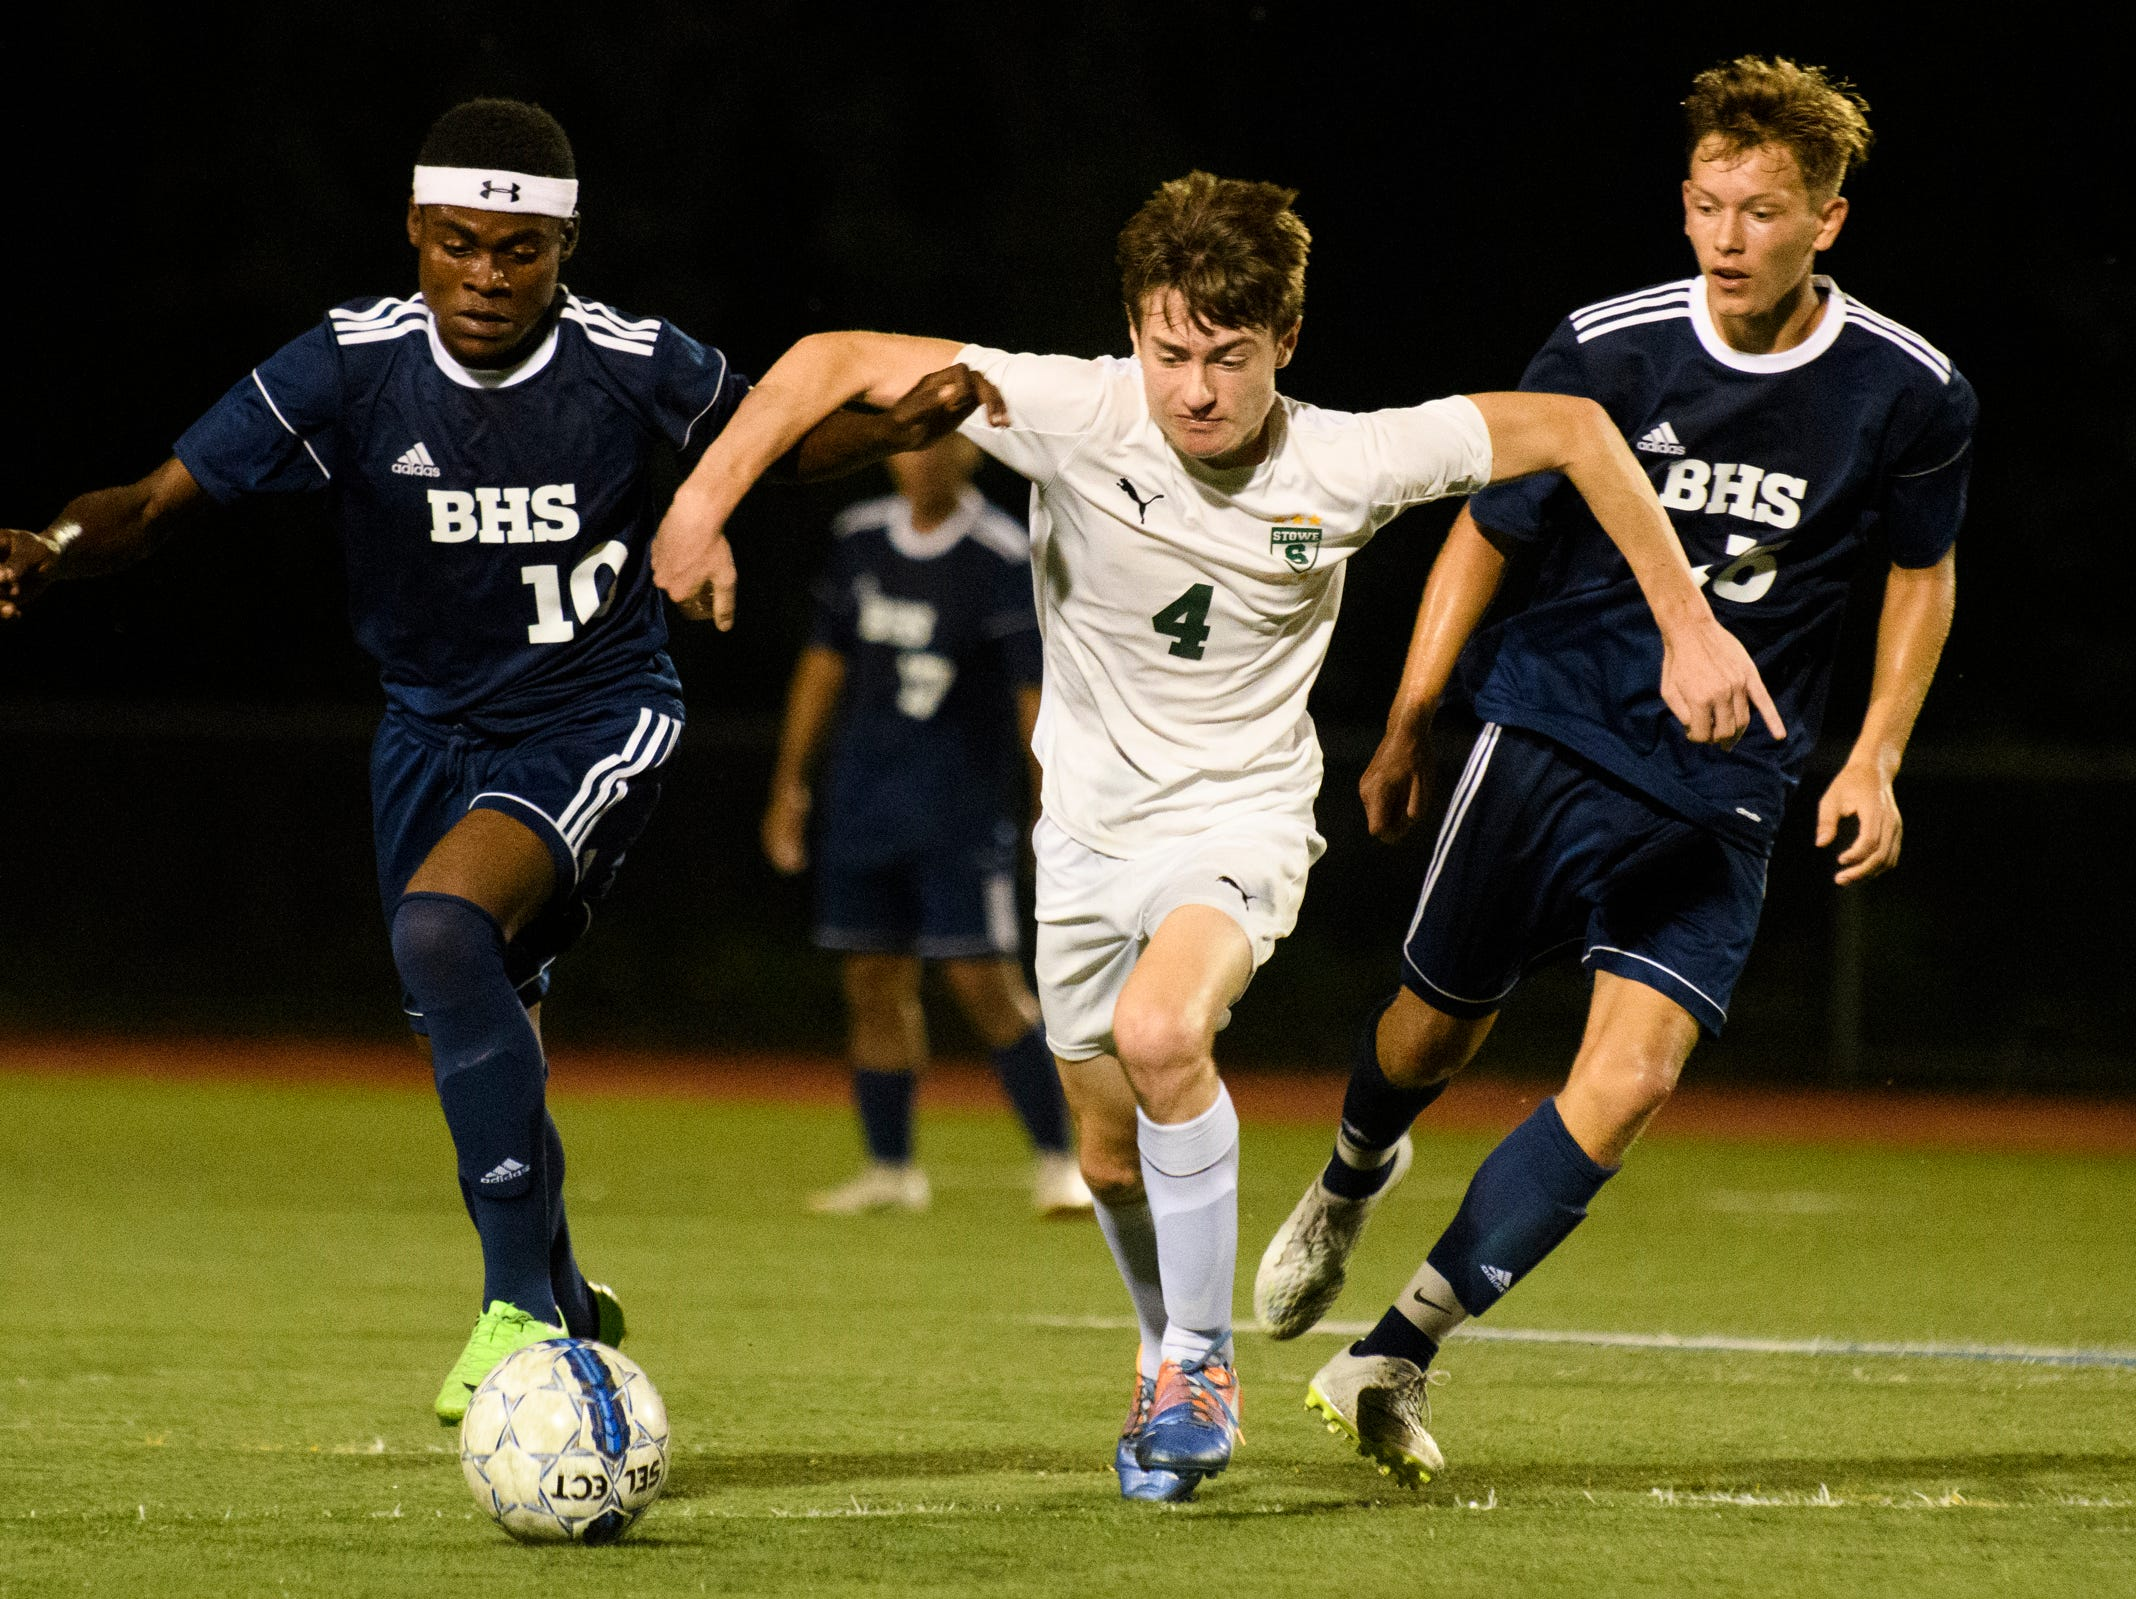 Stowe's Alex Reichelt (4) battles for the ball with Burlington's Will Badibanga (10) during the boys soccer game between Stowe and Burlington at Buck Hard field on Wednesday night September 5, 2018 in Burlington.